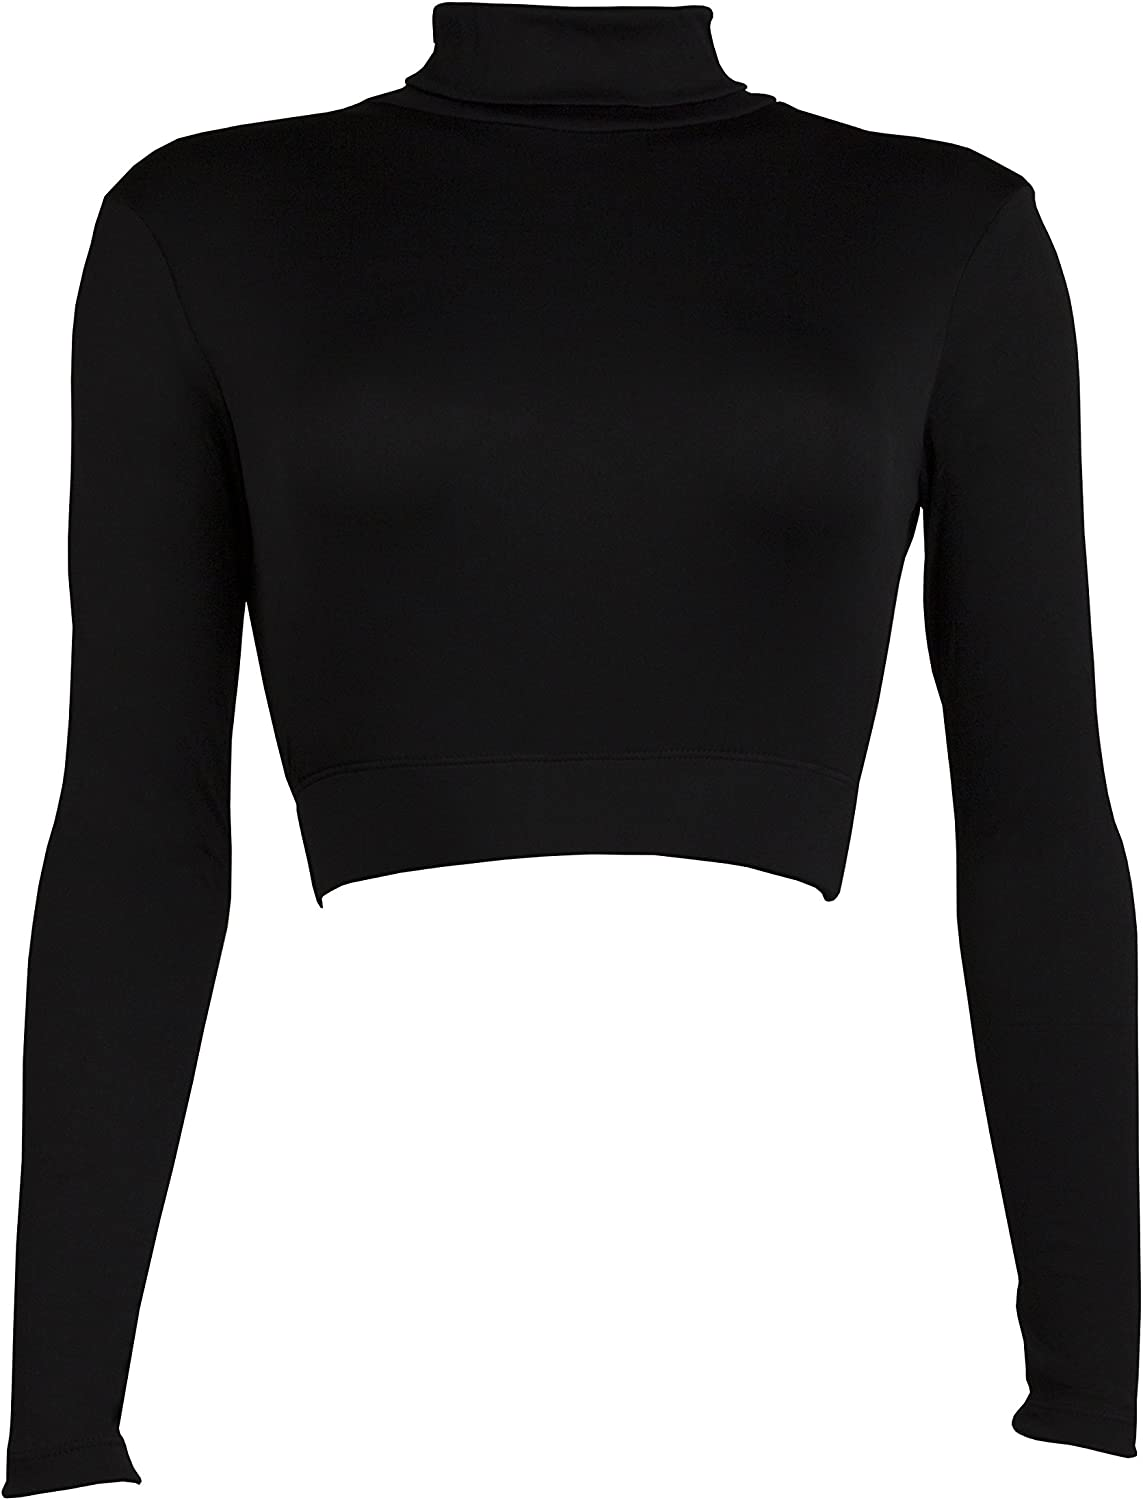 Cheer Fantastic Turtleneck Midriff Size XLarge Black